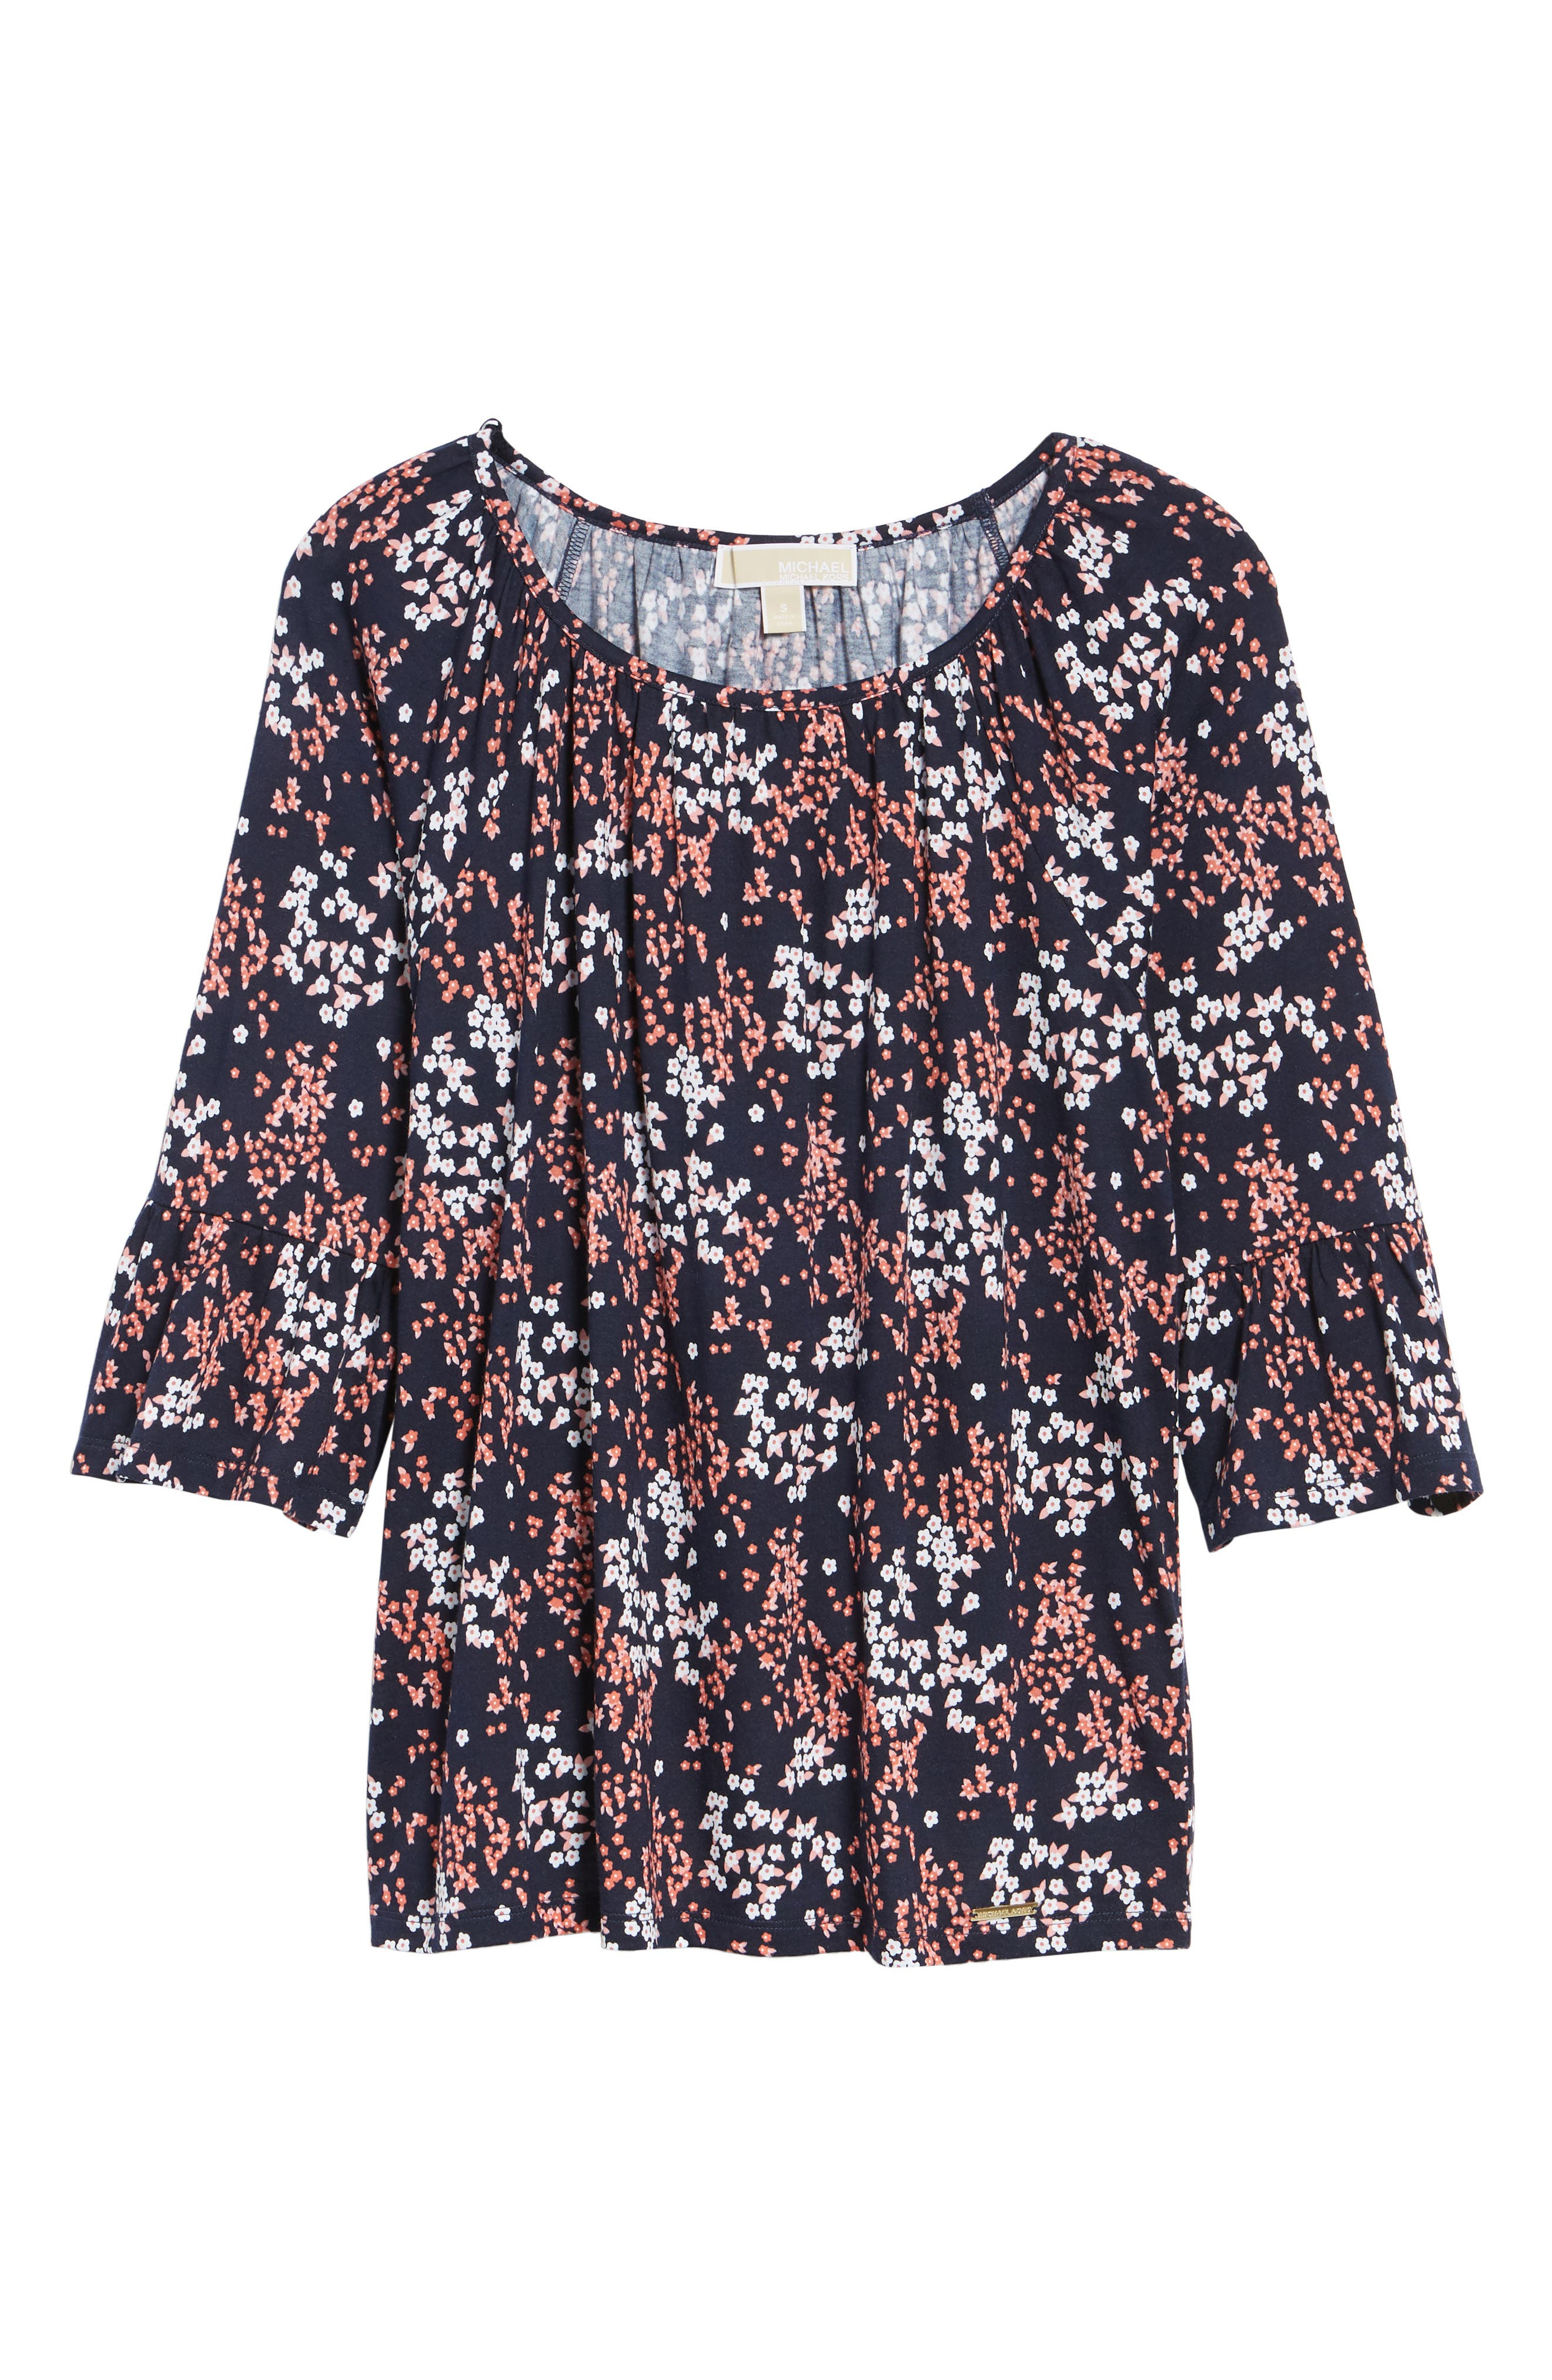 Scattered Blooms Print Peasant Top,                             Alternate thumbnail 7, color,                             678